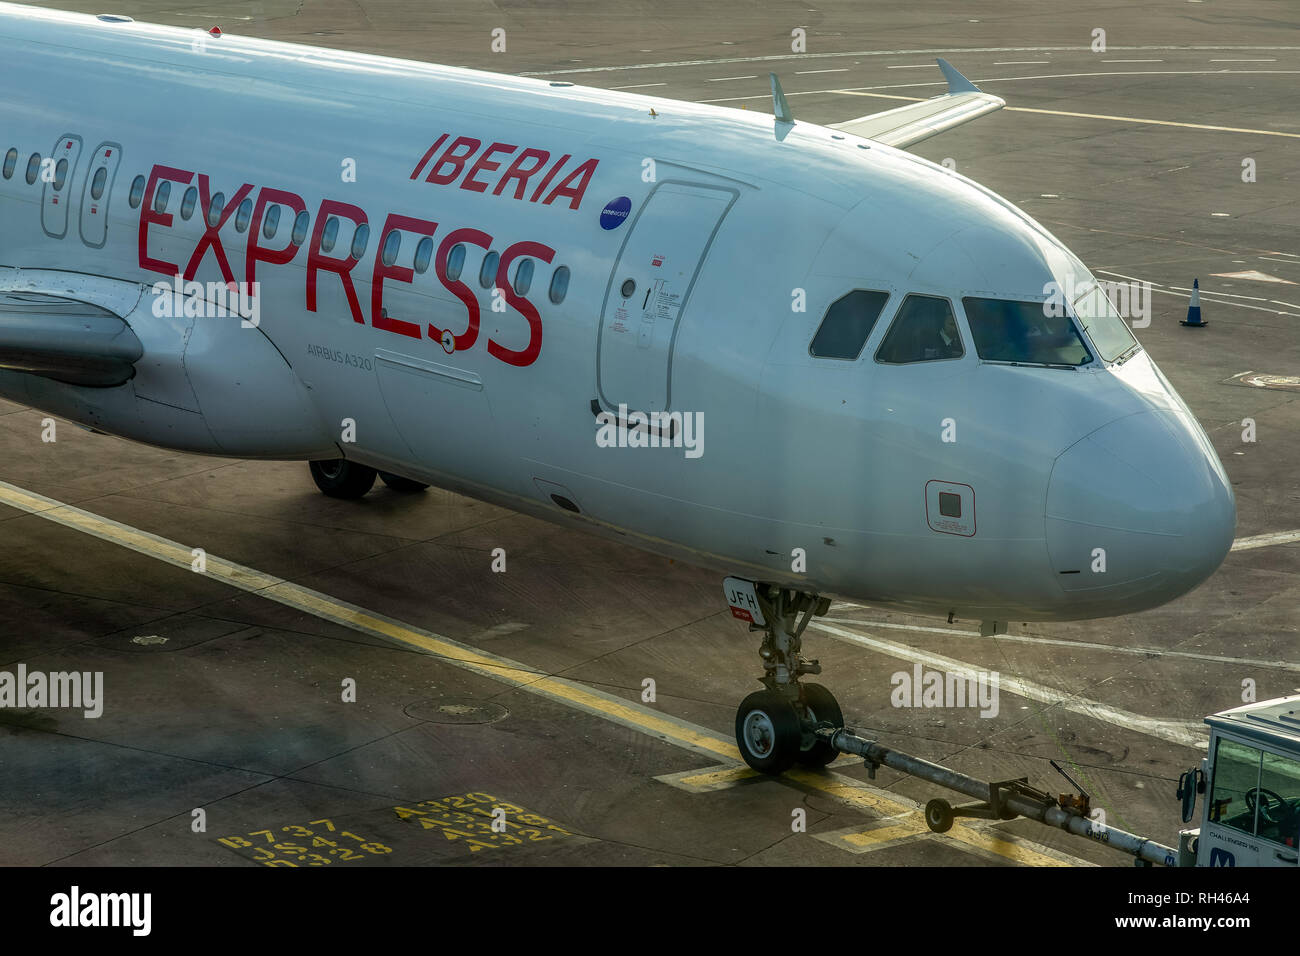 An Iberia Express Airbus A320, registered as EC-JFH, at manchester Airport in England. - Stock Image